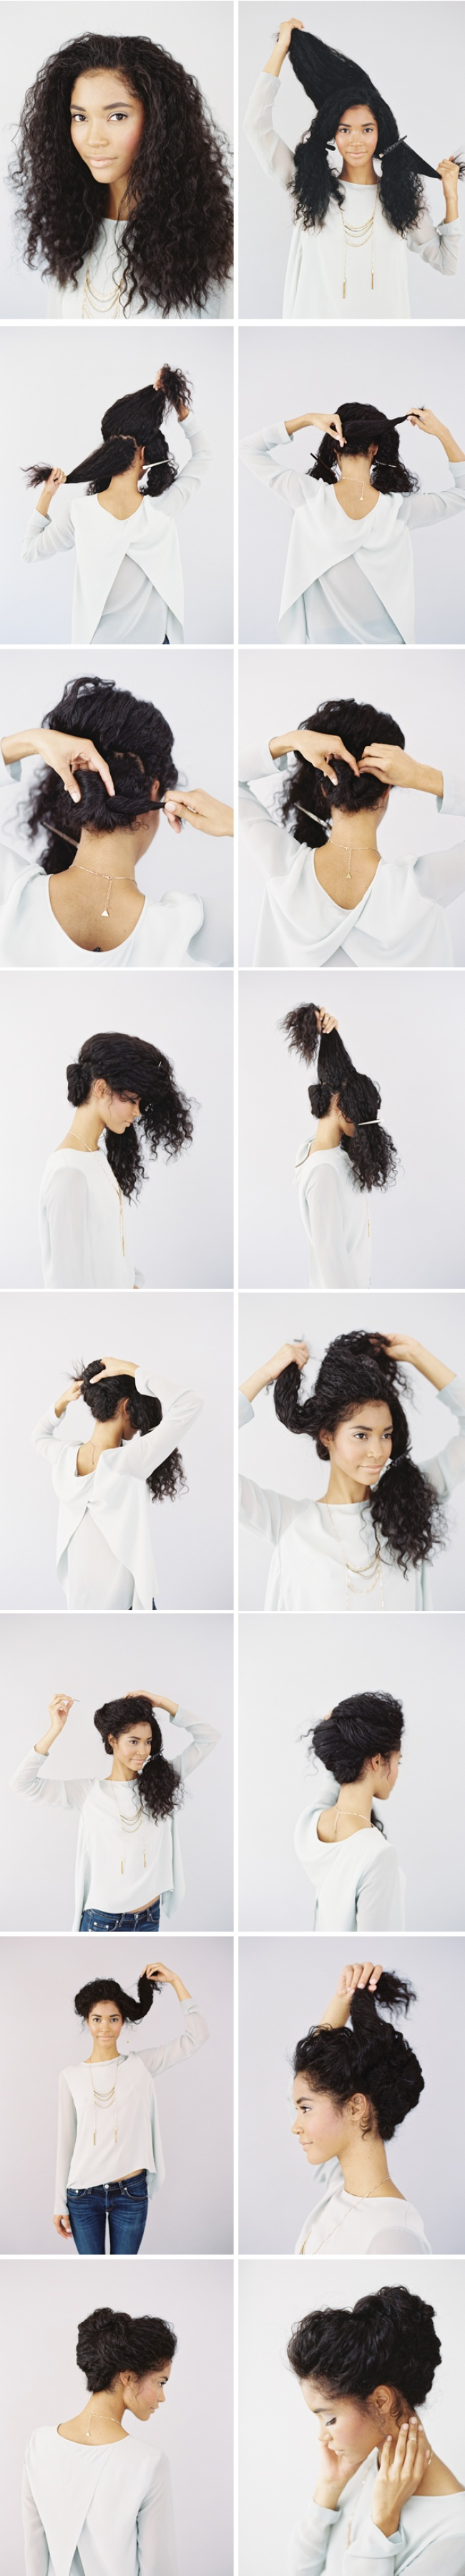 11553065-how-to-updo-naurally-curly-hair-1467842543-650-46787b8696-1467977395